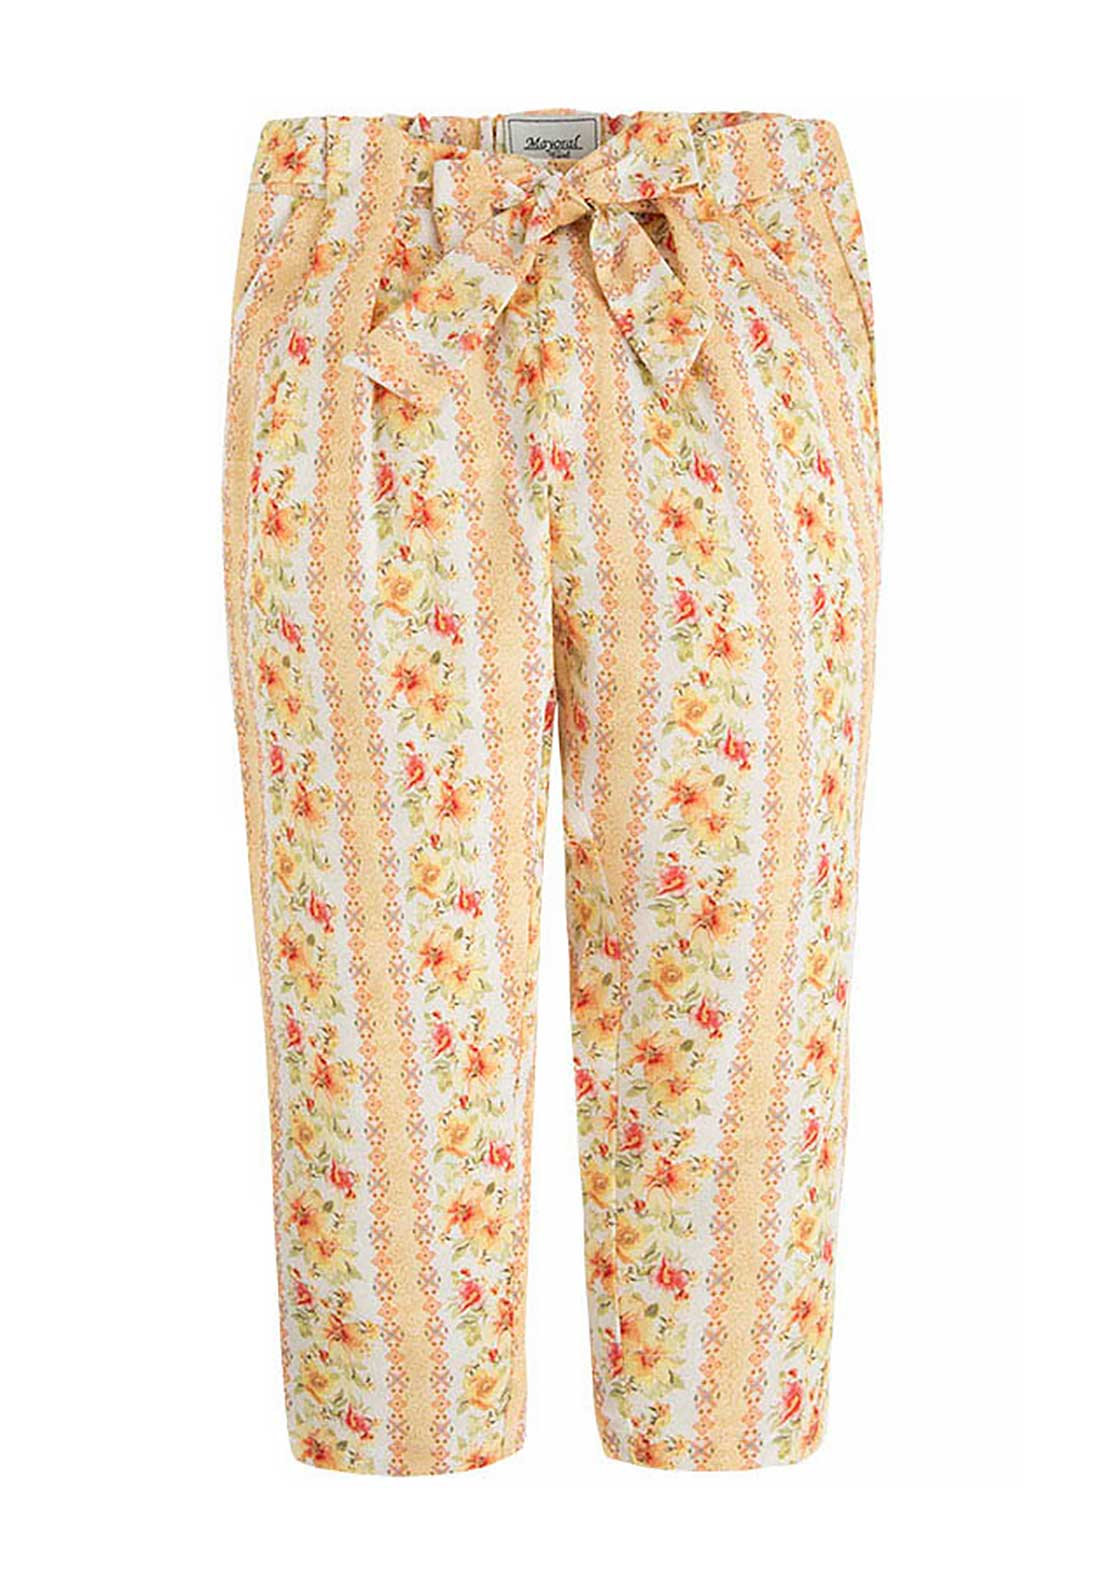 Mayoral Girls Floral Print Trousers, Vintage Yellow